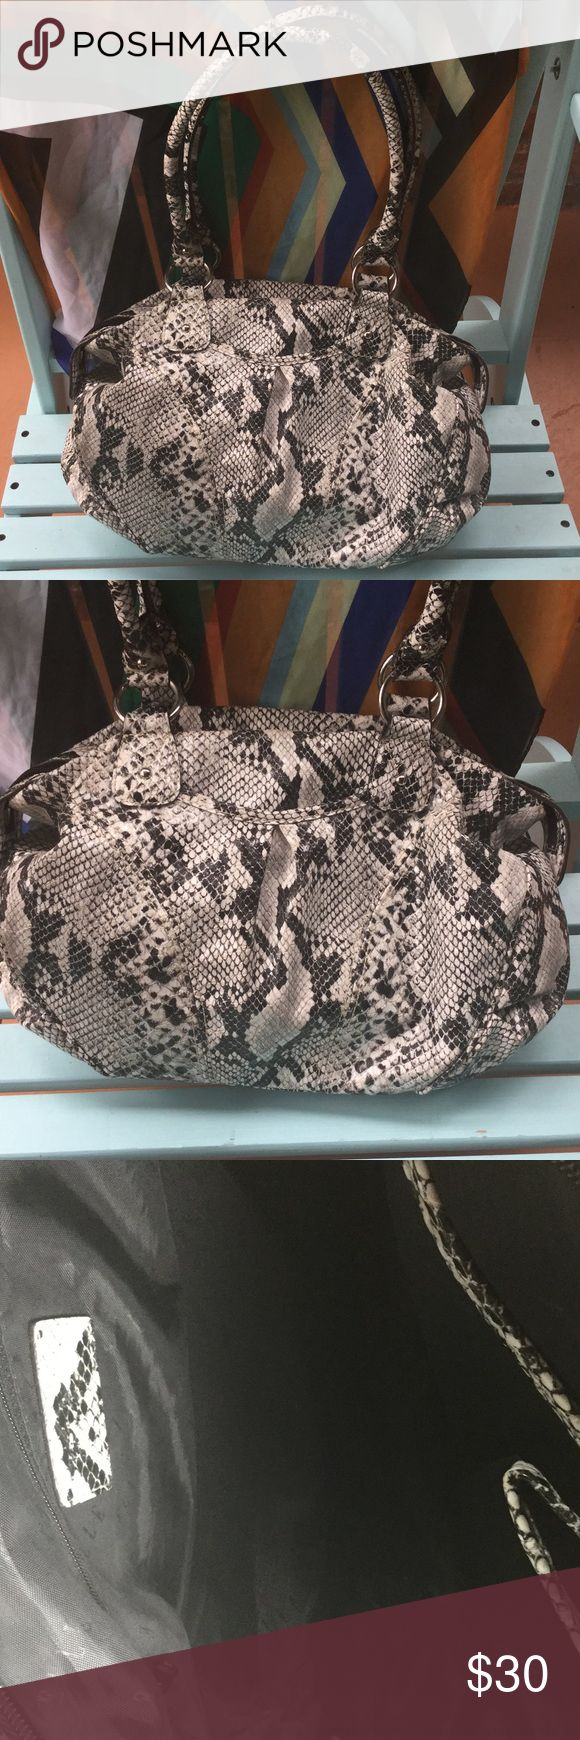 vinyl snake print bag ELLE snake print vinyl bag.  Interior has one zipper pocket and two open side pockets.  Bag dimensions are 13.5 inches x 10 inches x 4 inches.  11 inch handle drop.  EUC Elle Bags Shoulder Bags